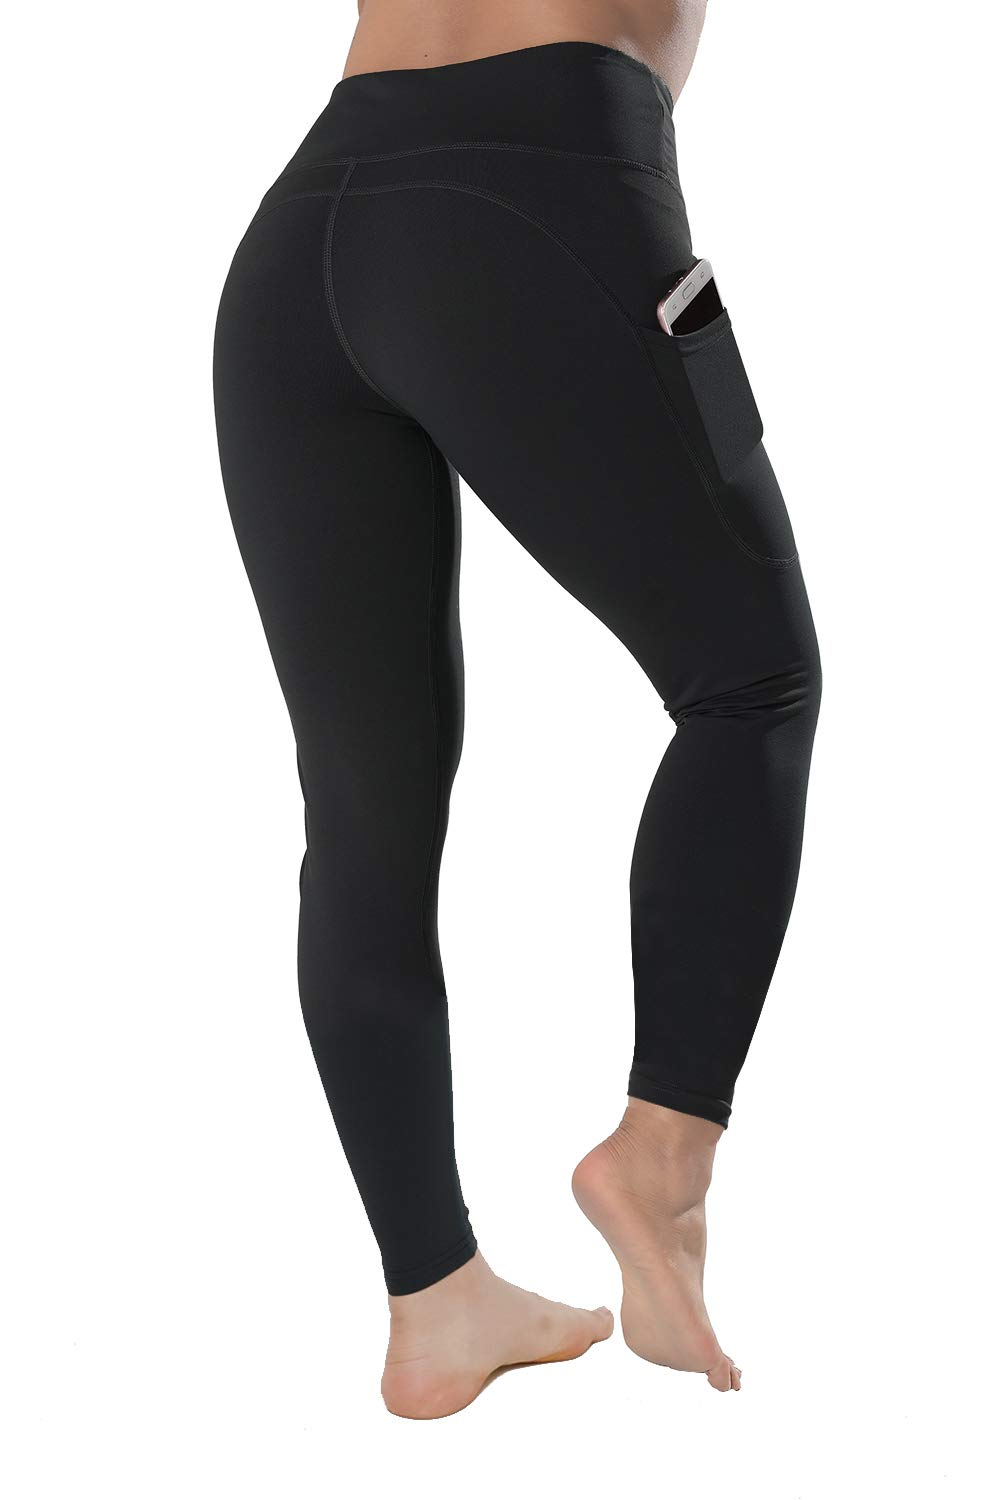 QYQ High Waisted Leggings with Pockets - Workout Leggings for Women Stretch Power Flex Yoga Pants - Full&Capri (Large, Black) by QYQ